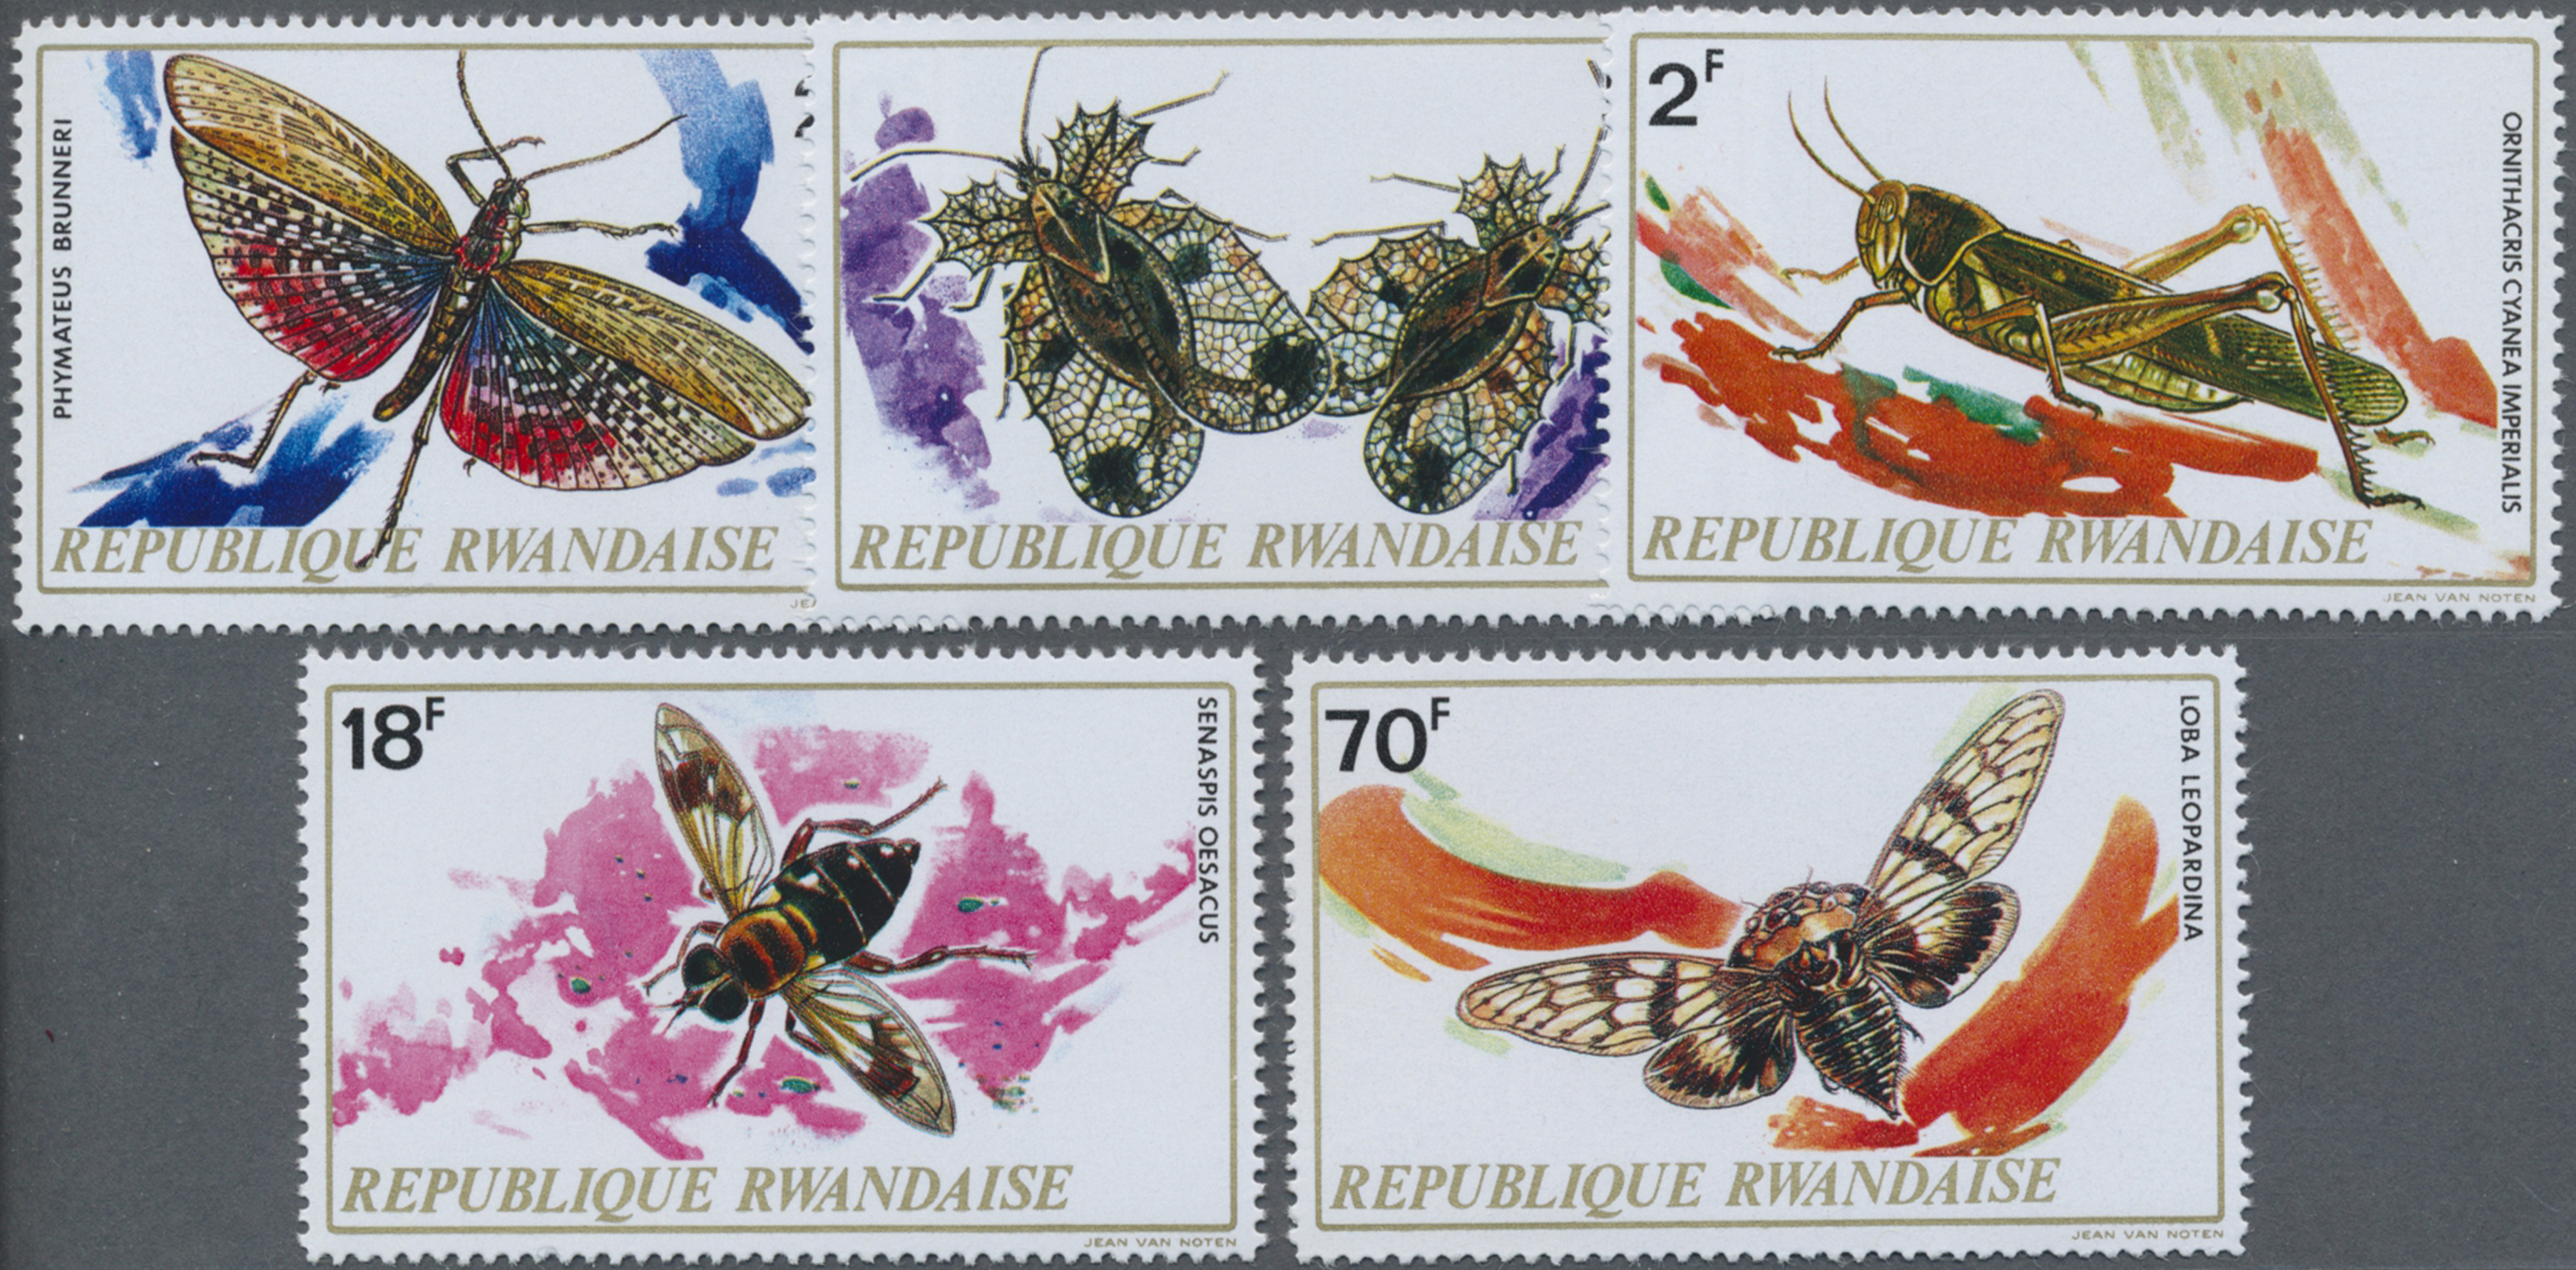 Lot 21149 - thematik: tiere-insekten / animals-insects  -  Auktionshaus Christoph Gärtner GmbH & Co. KG Sale #47 Collections: Overseas, Thematics, Europe